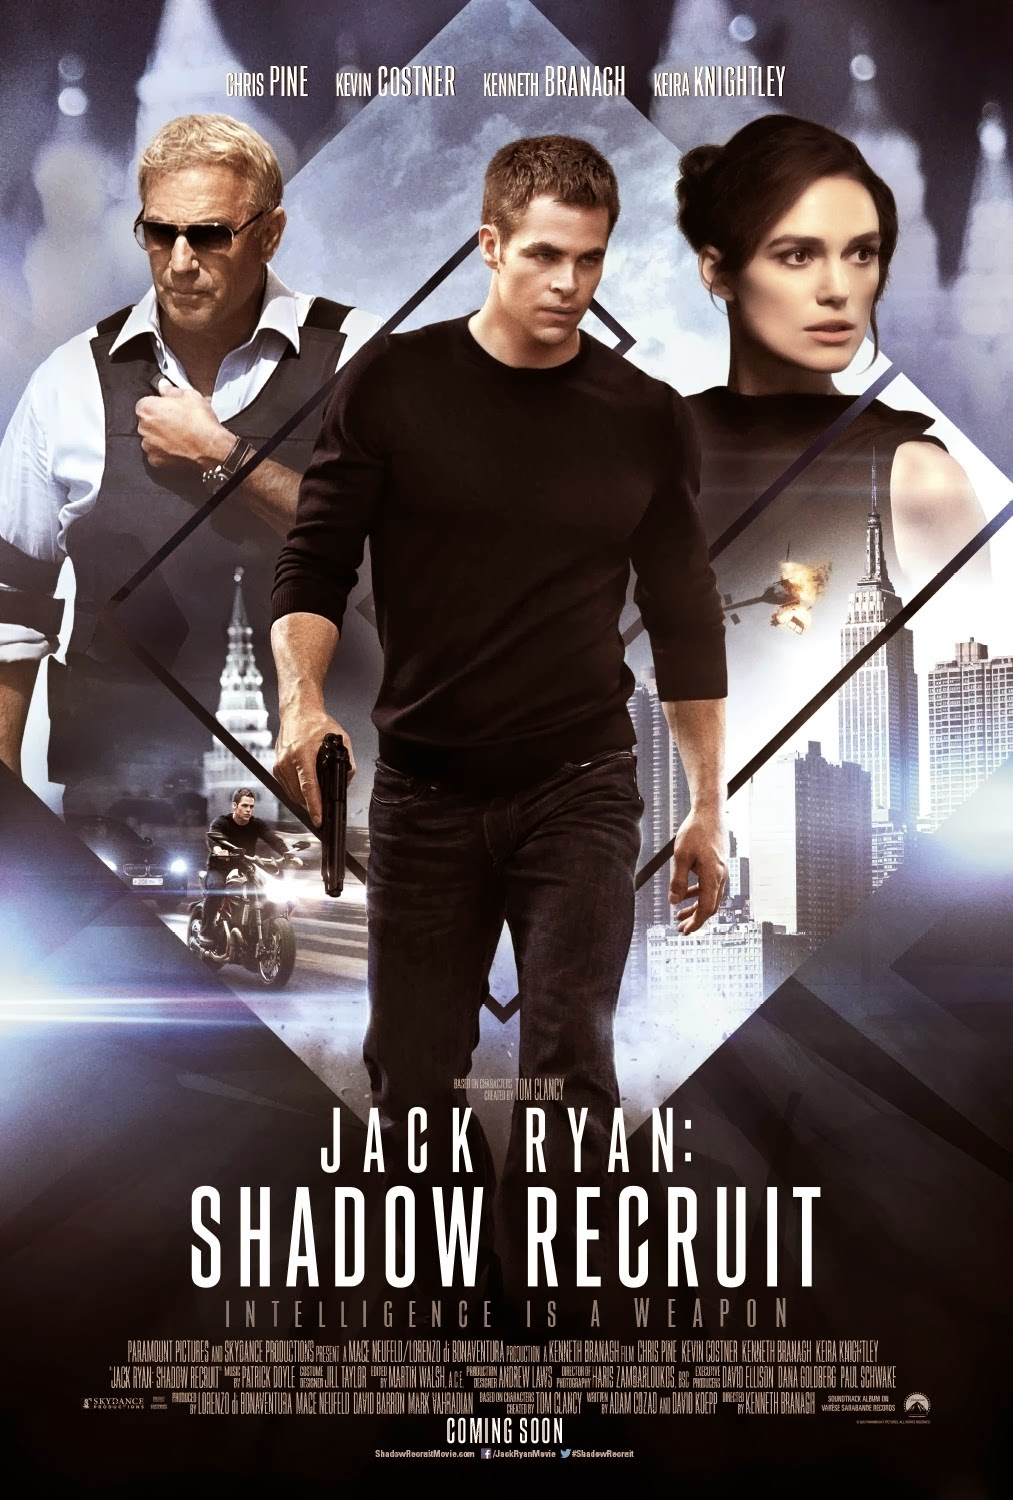 Jack Ryan Shadow Recruit (2014)